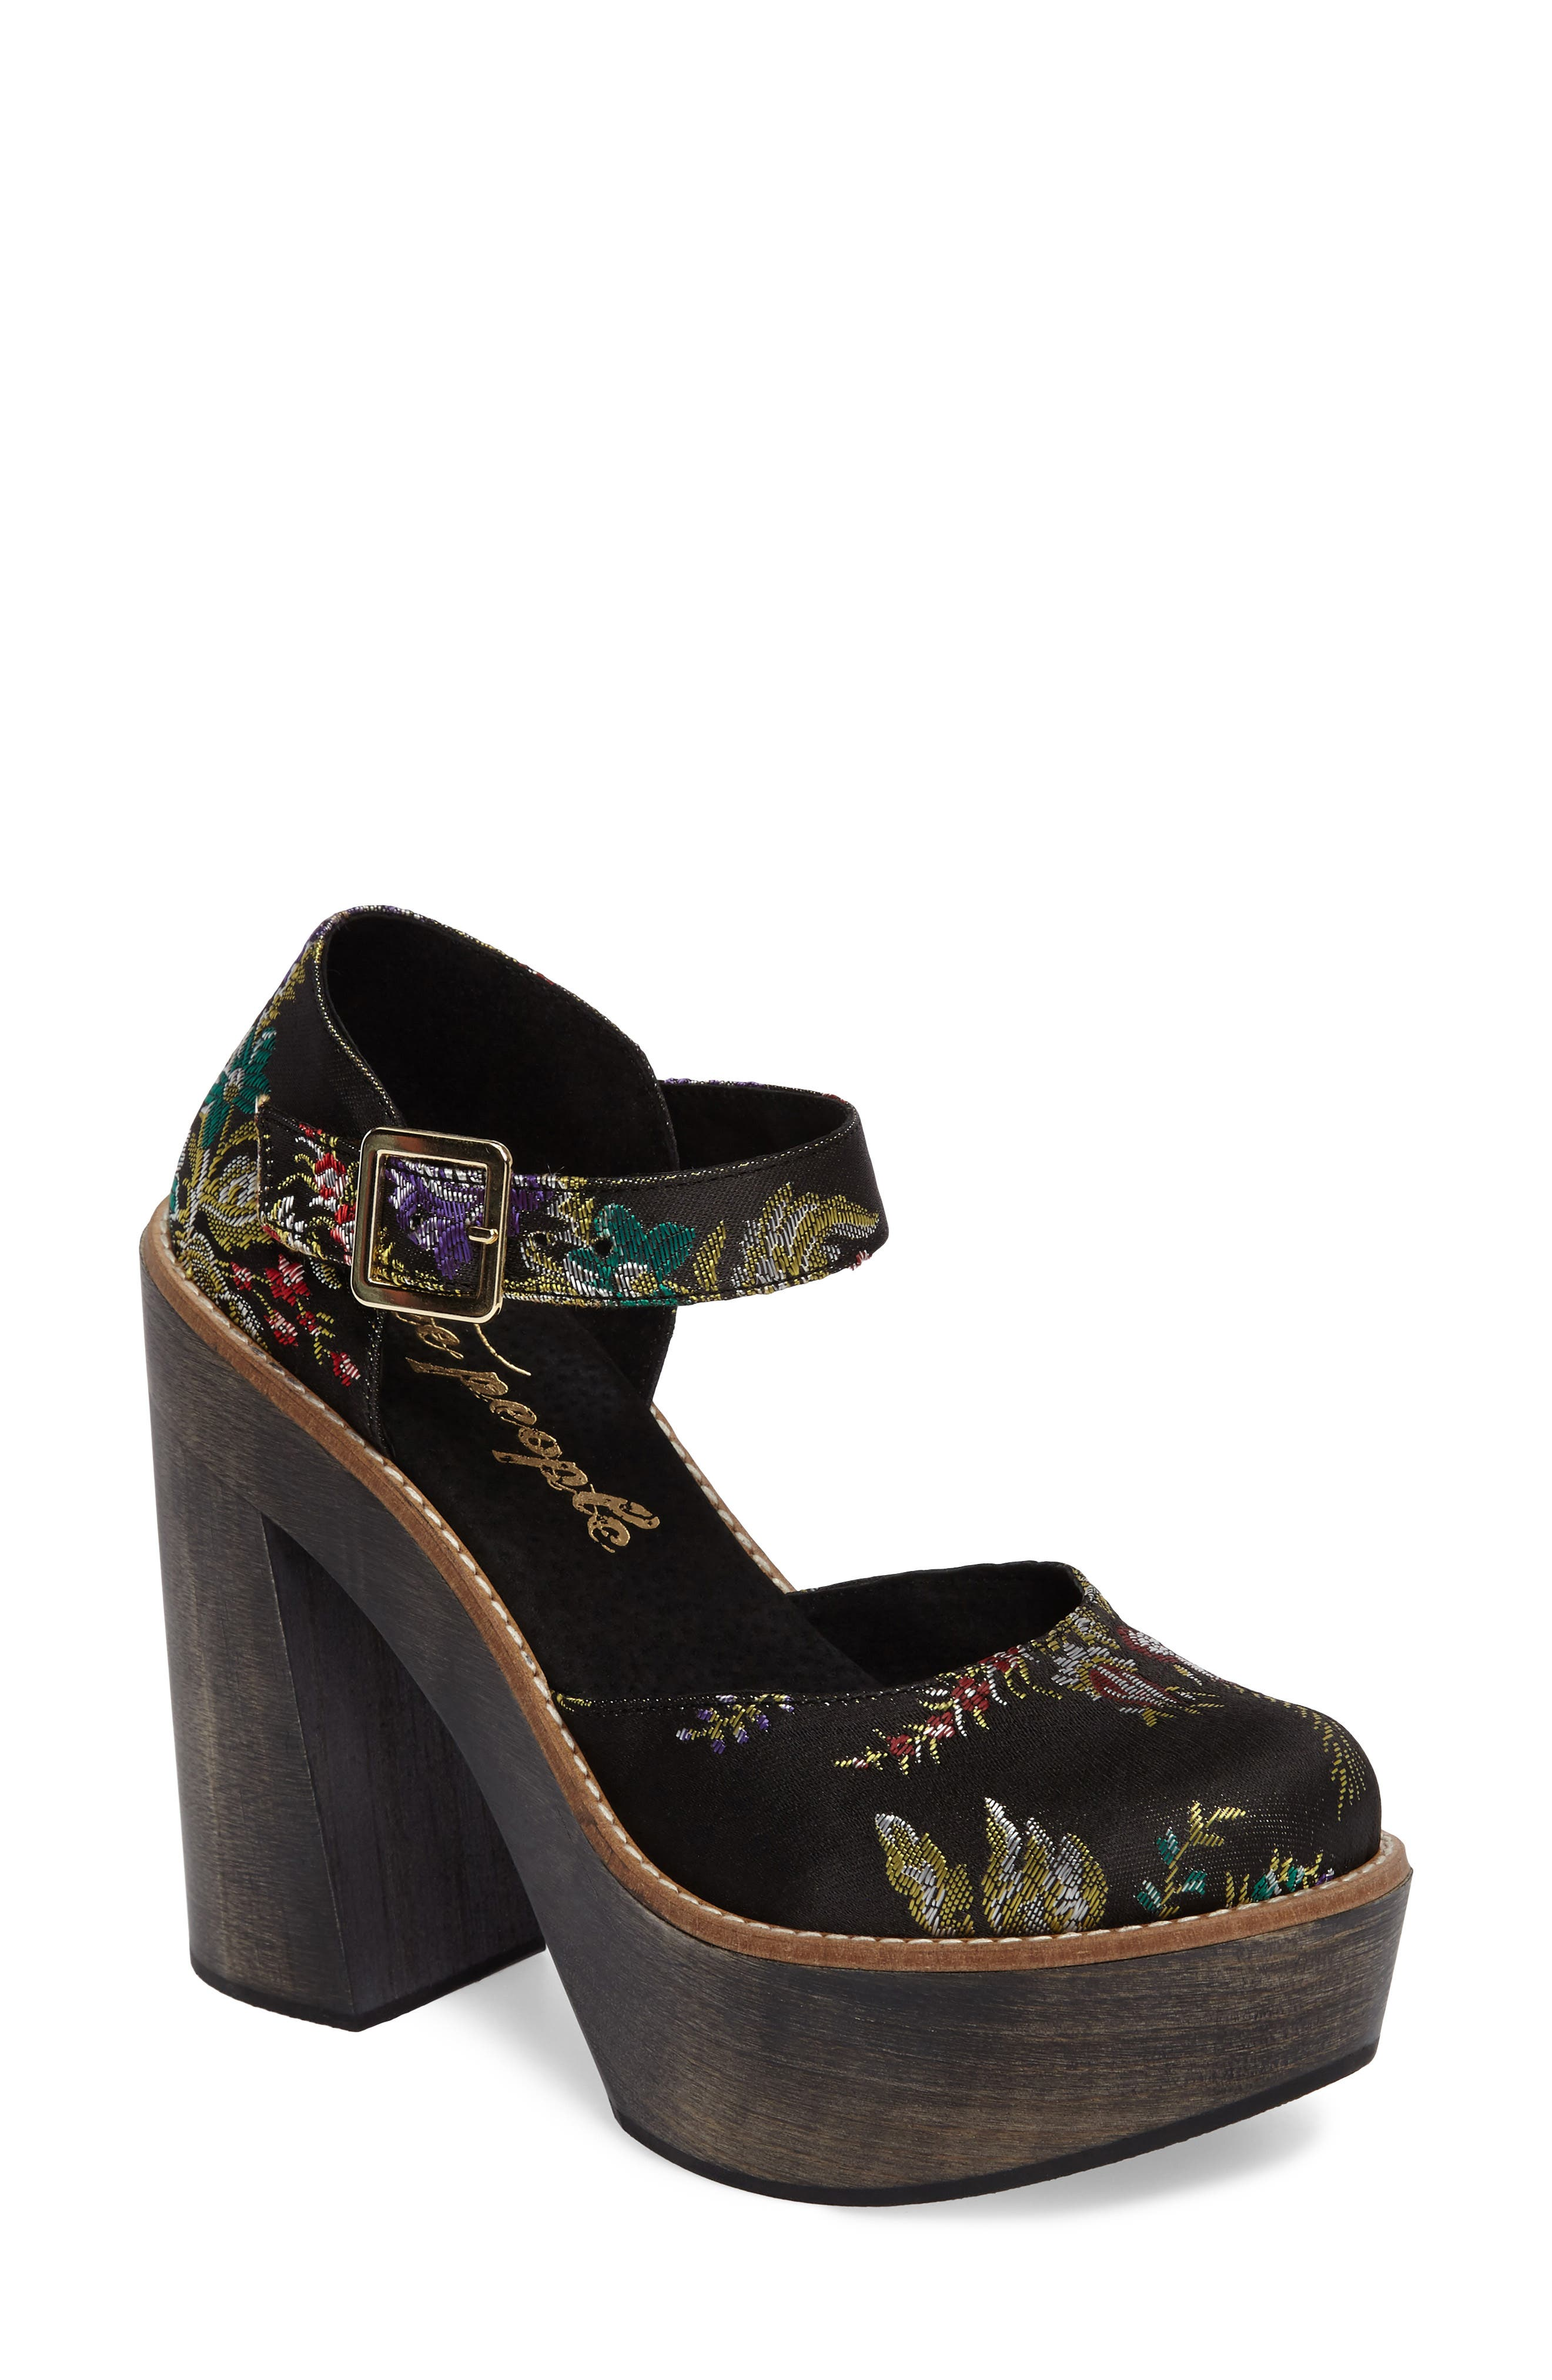 Free People Starlet Embroidered Platform Pump (Women)